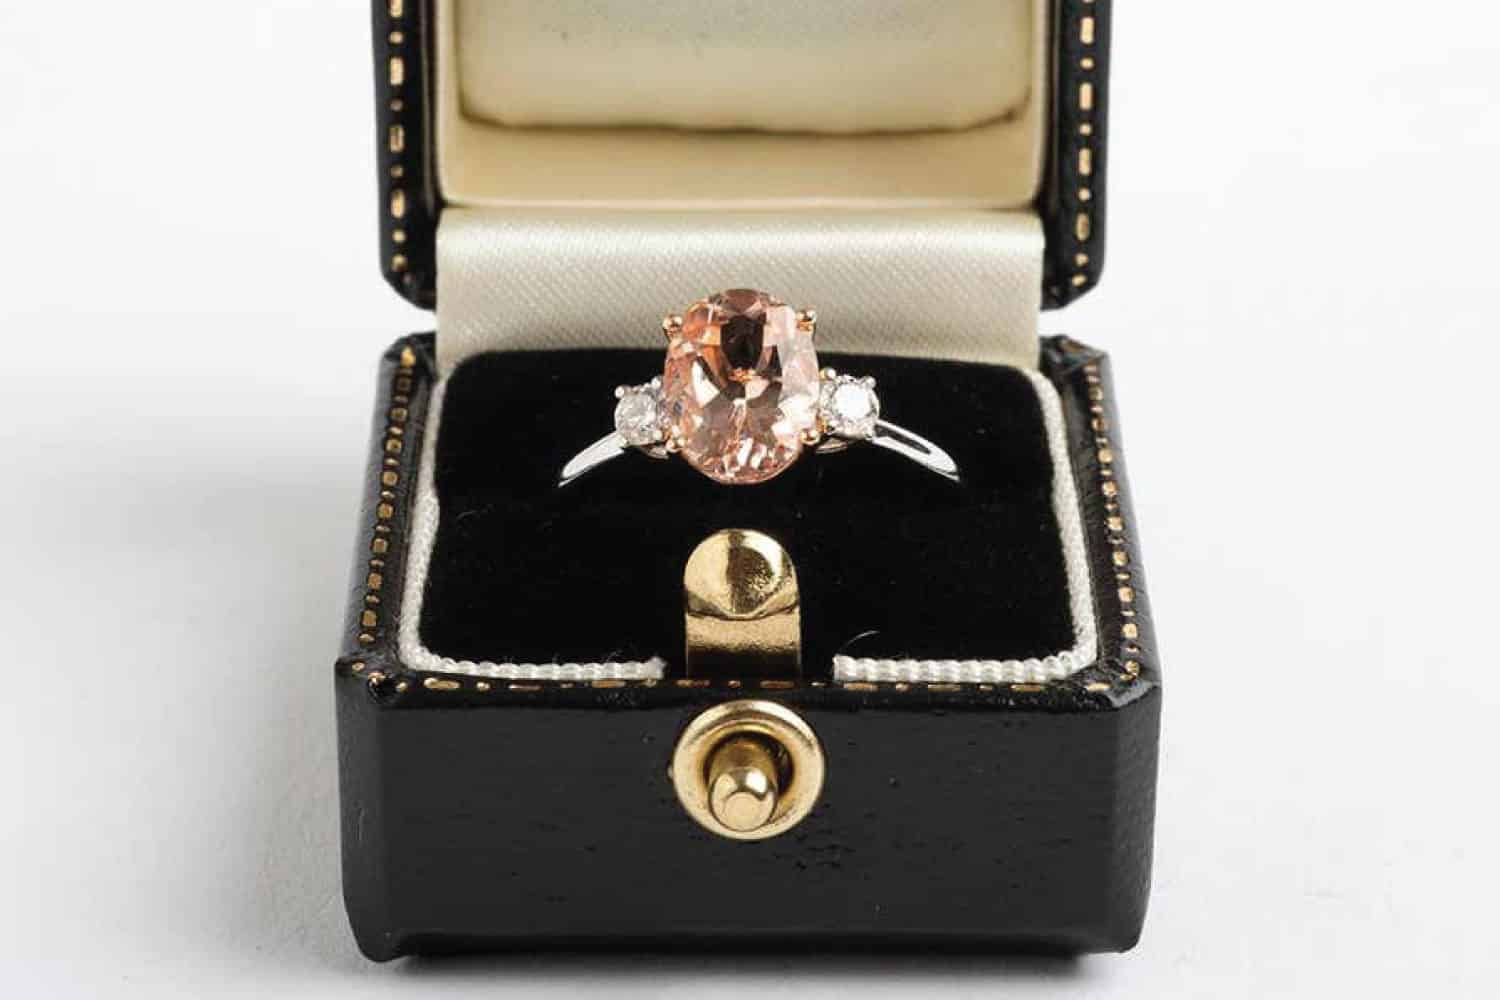 Morganite cluster ring with two brilliant-cut diamonds